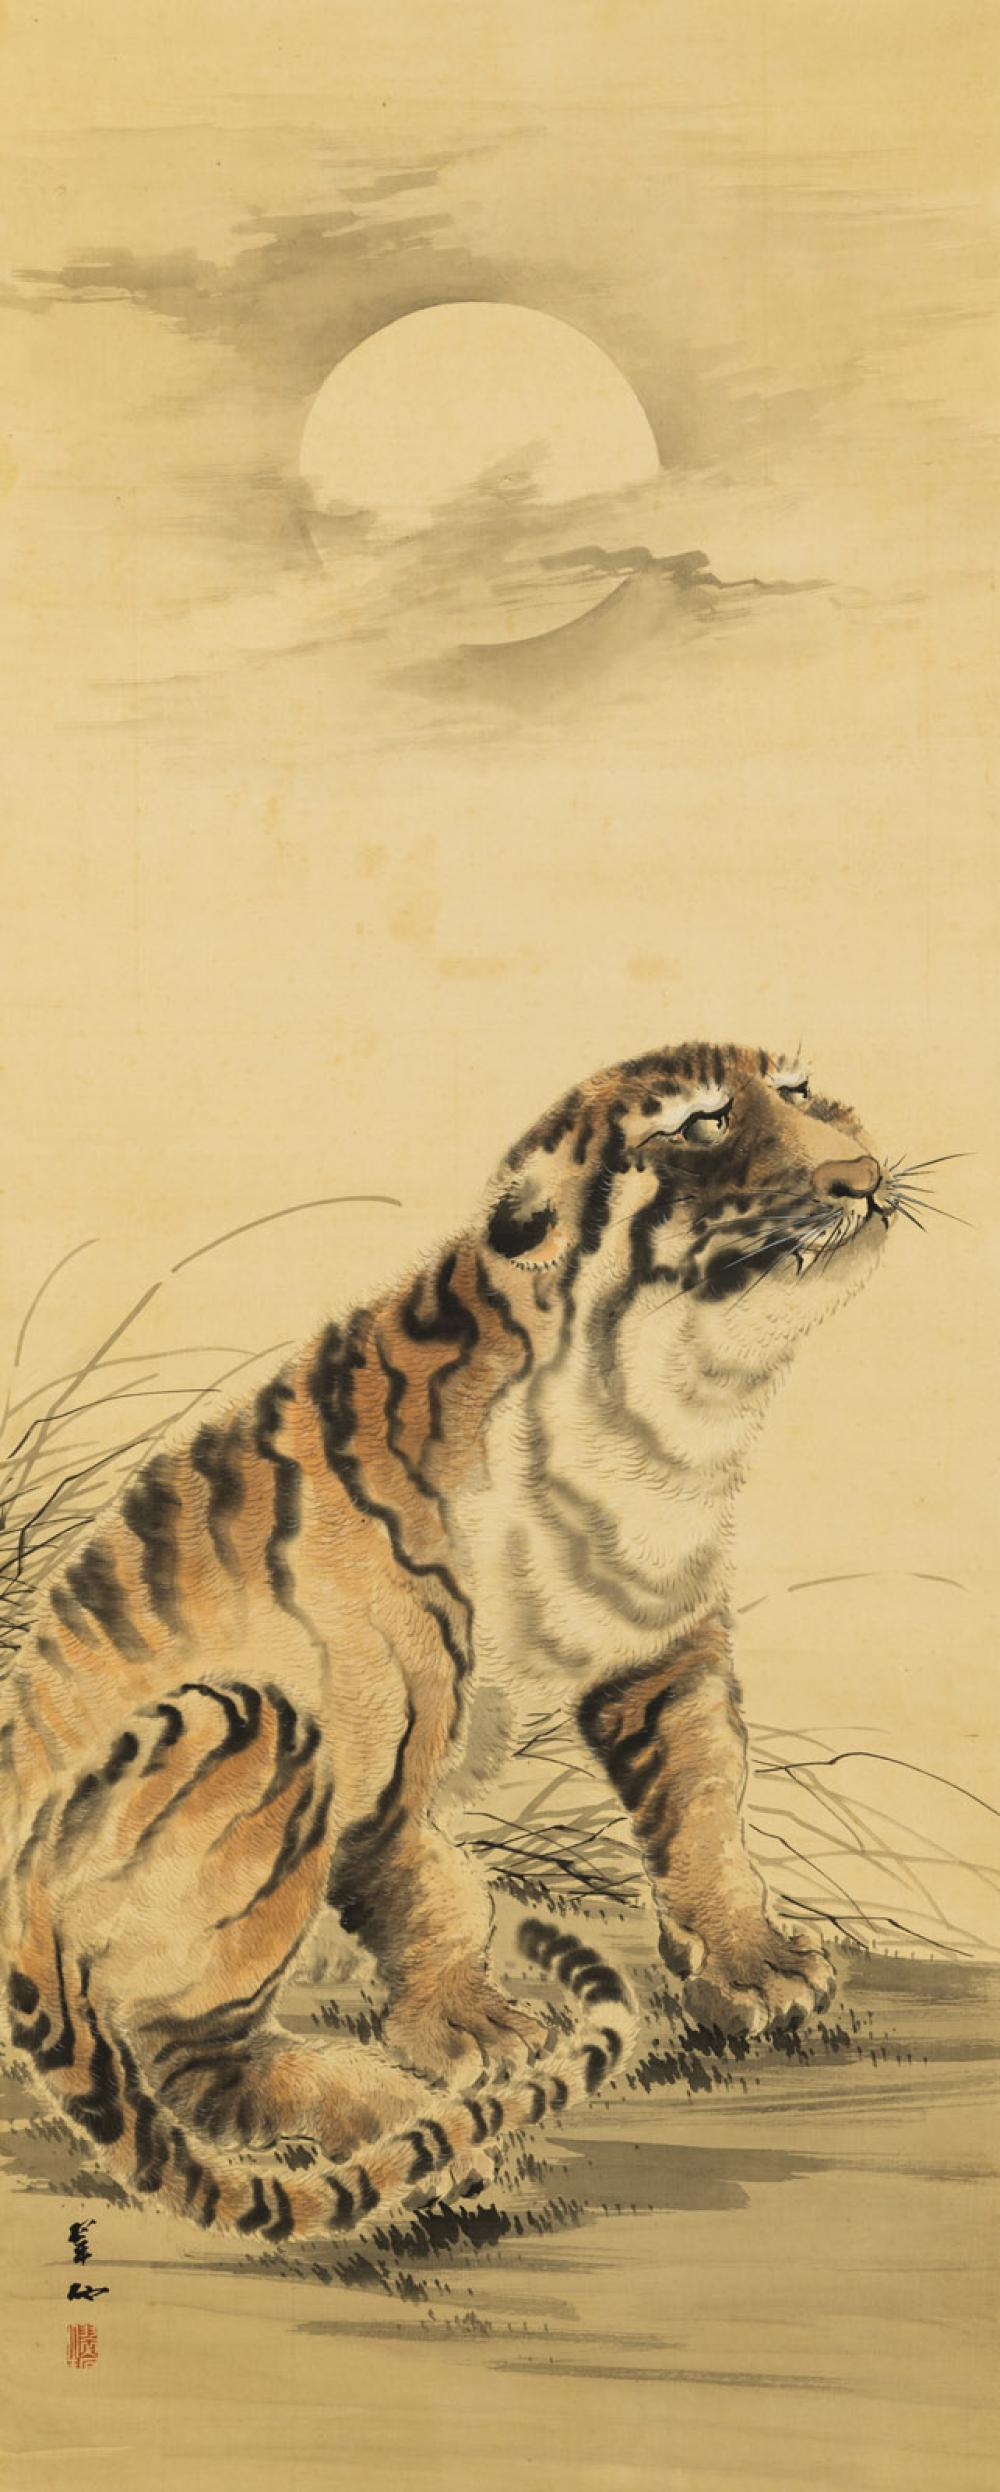 A HANGING SCROLL OF A TIGER UNDER A FULL MOON BY OHASHI SUISEKI (1865-1945),